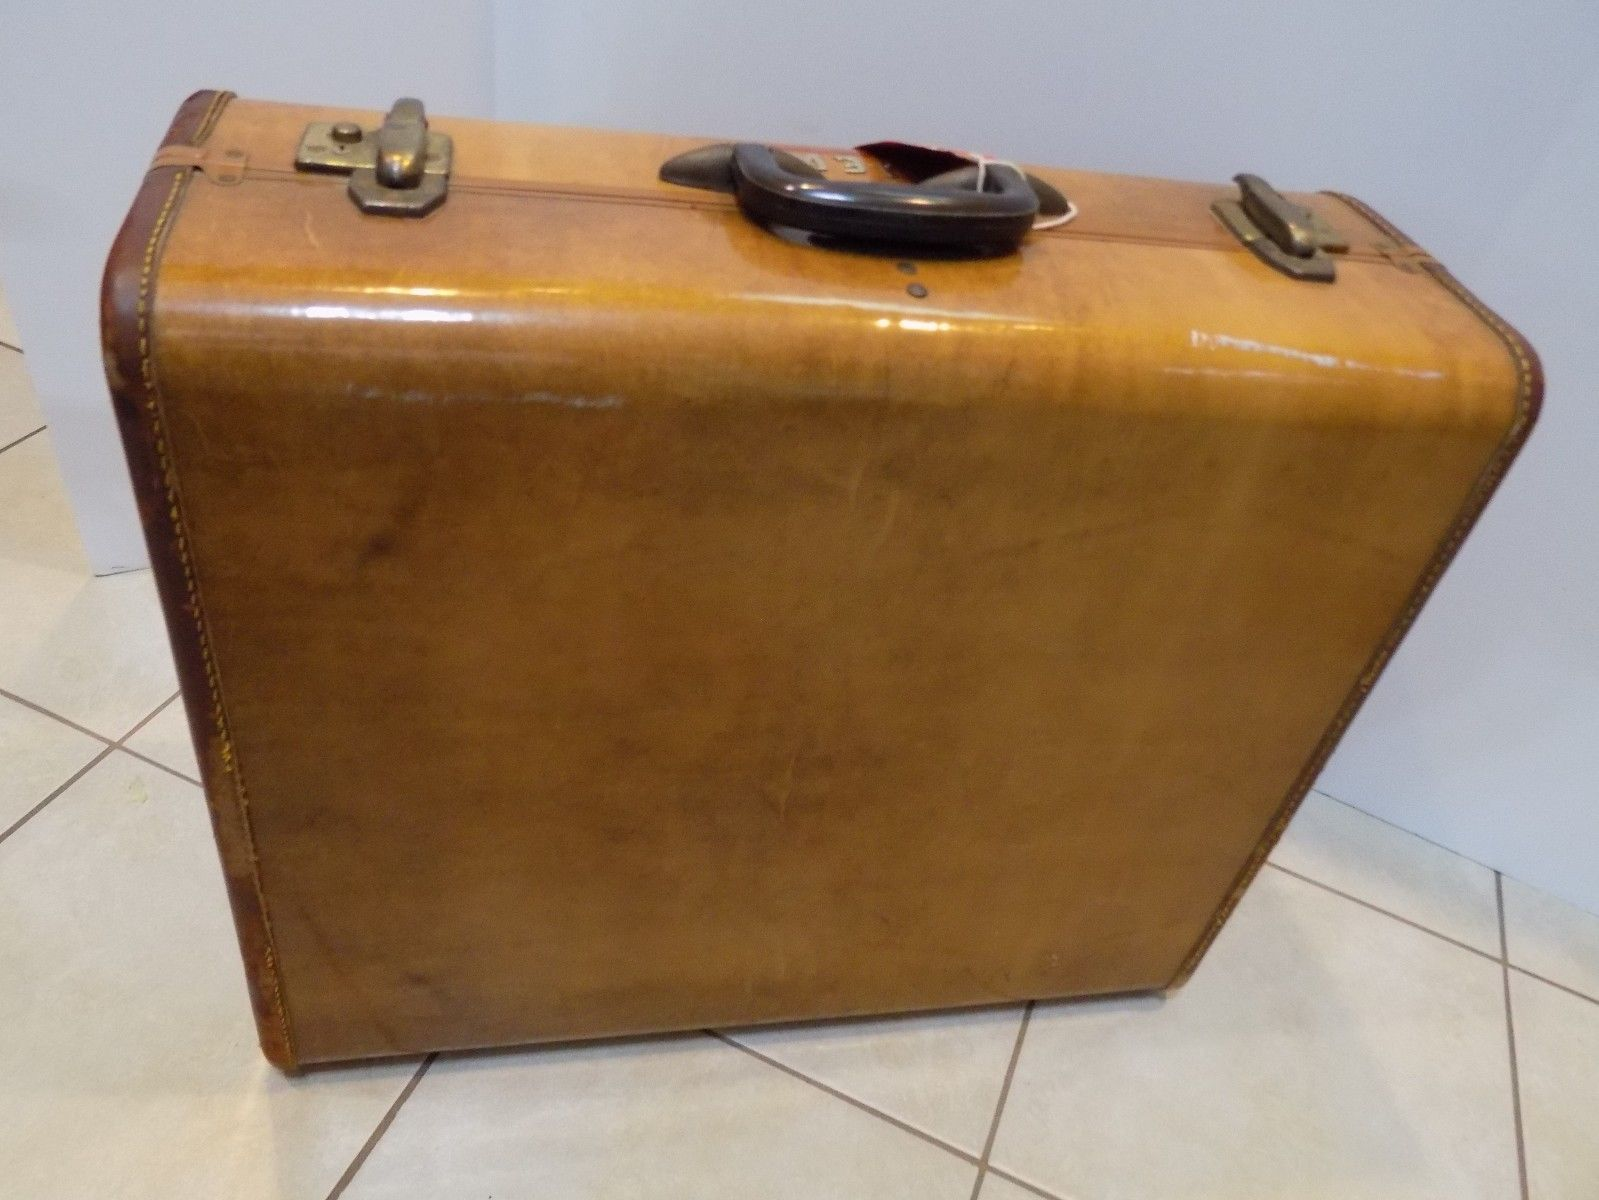 Vintage Samsonite Suitcase Luggage Pants Hanger Home Decor Craft Project Travel